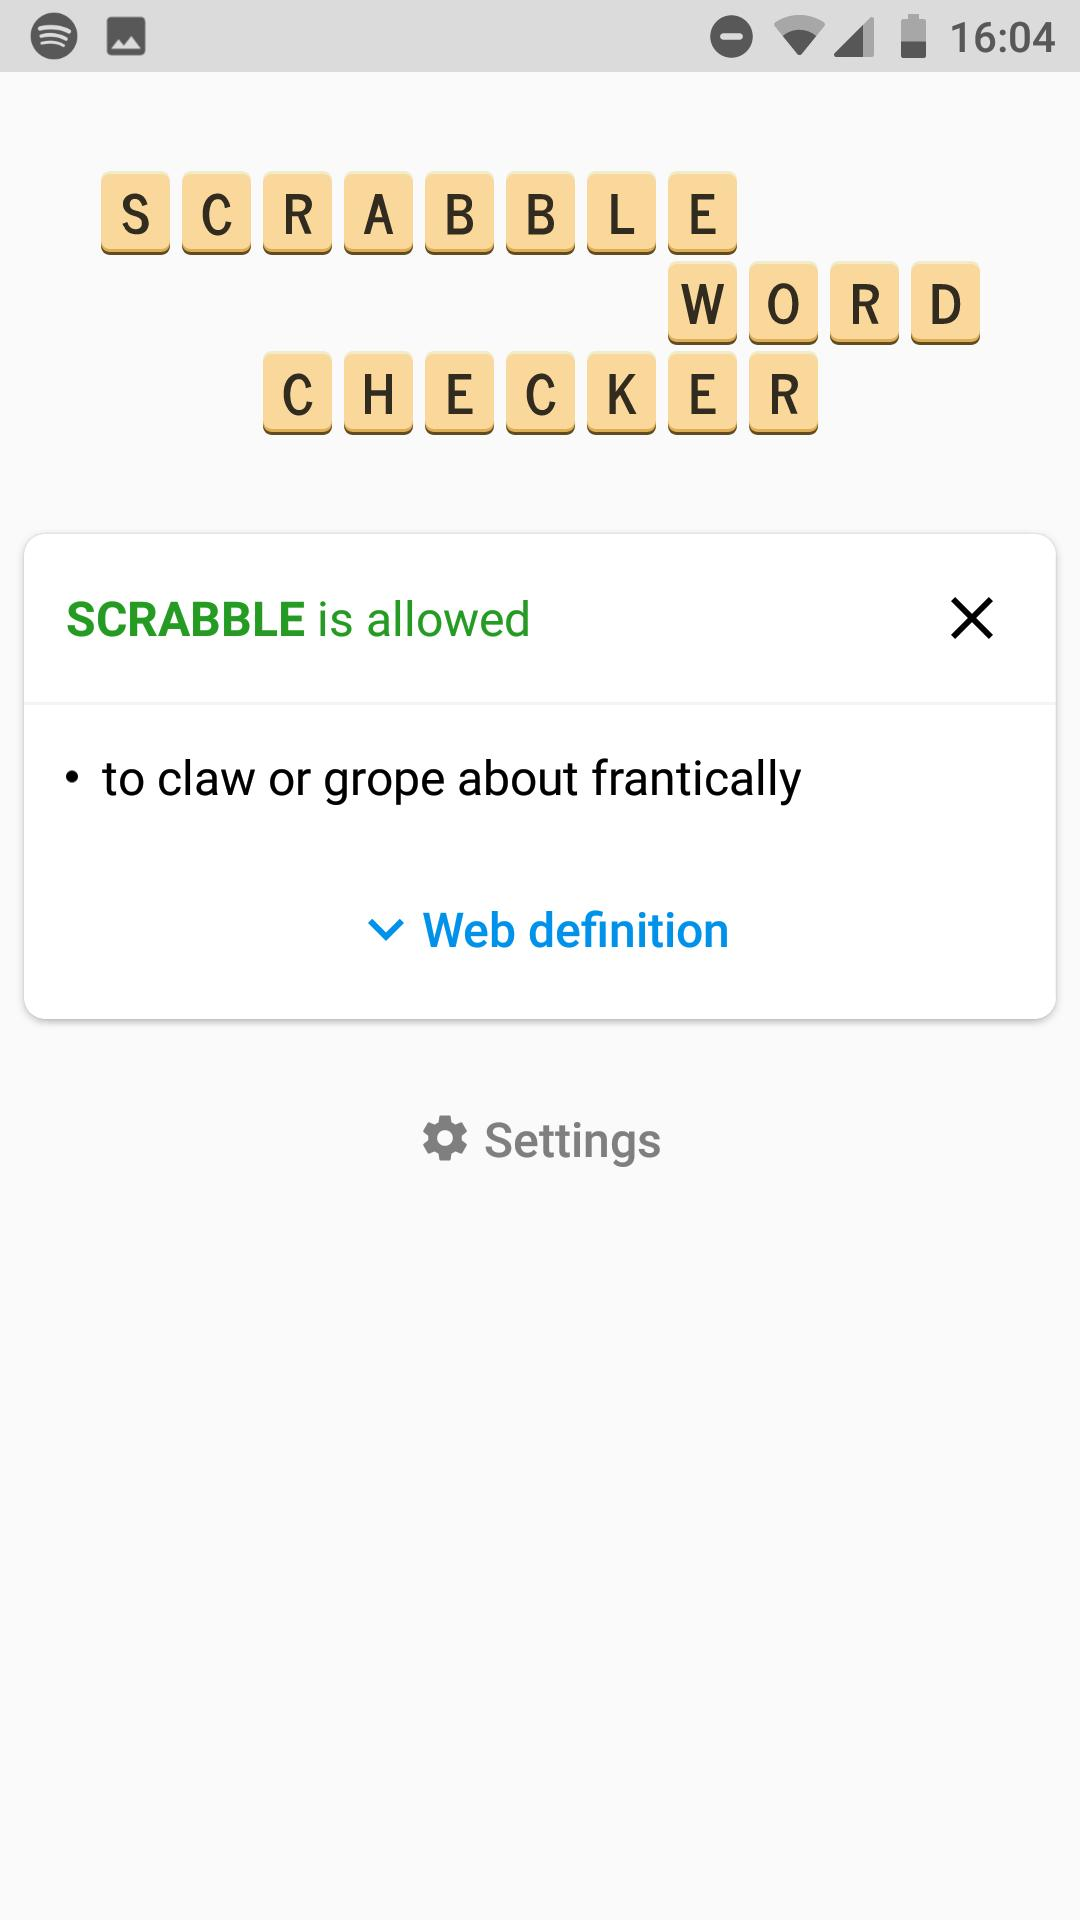 SCRABBLE Word Checker for Android - APK Download